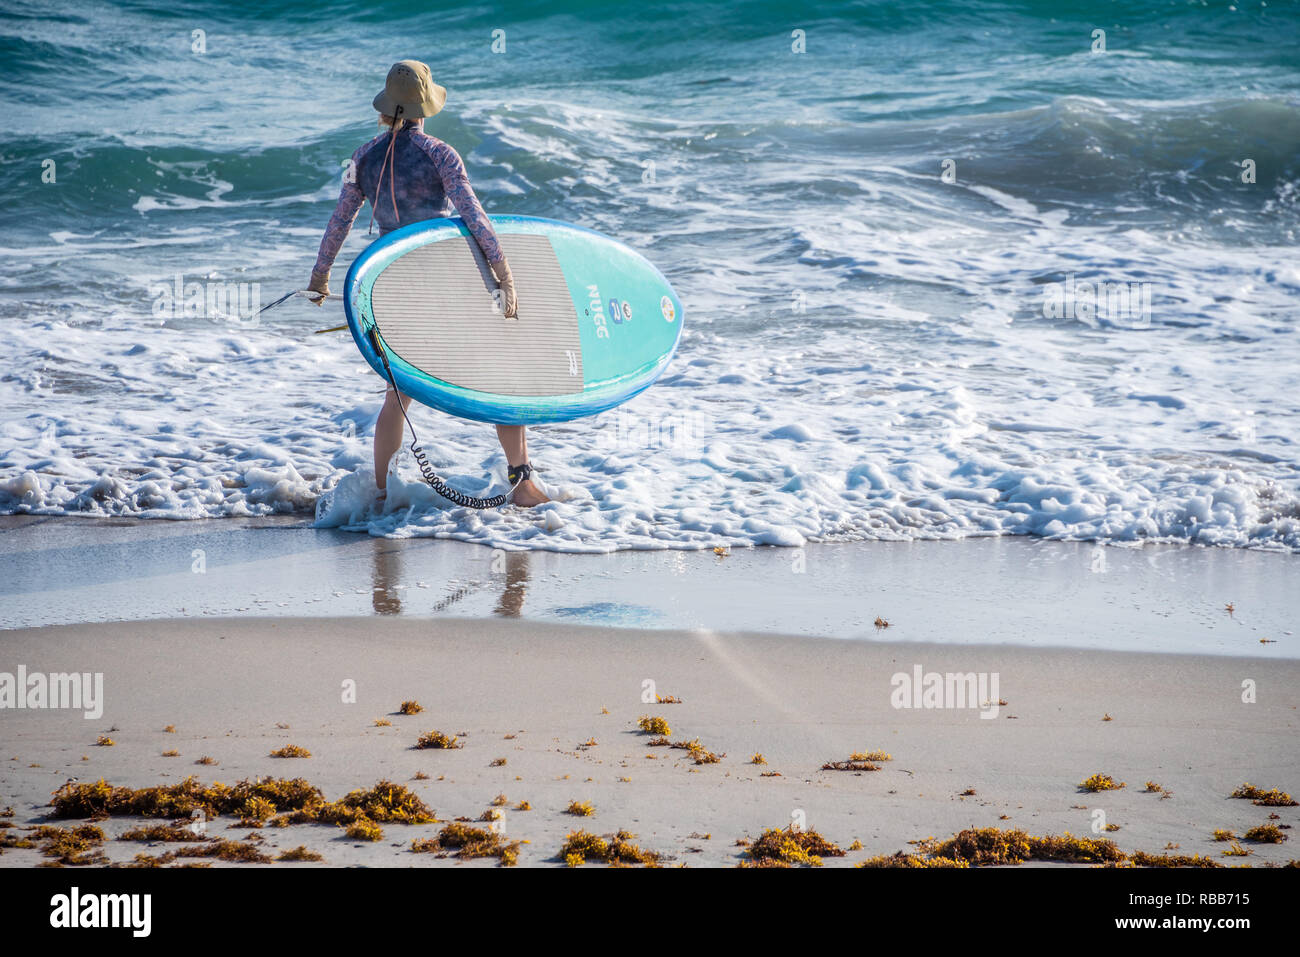 Female stand-up paddle boarder entering the ocean at Palm Beach, Florida. - Stock Image